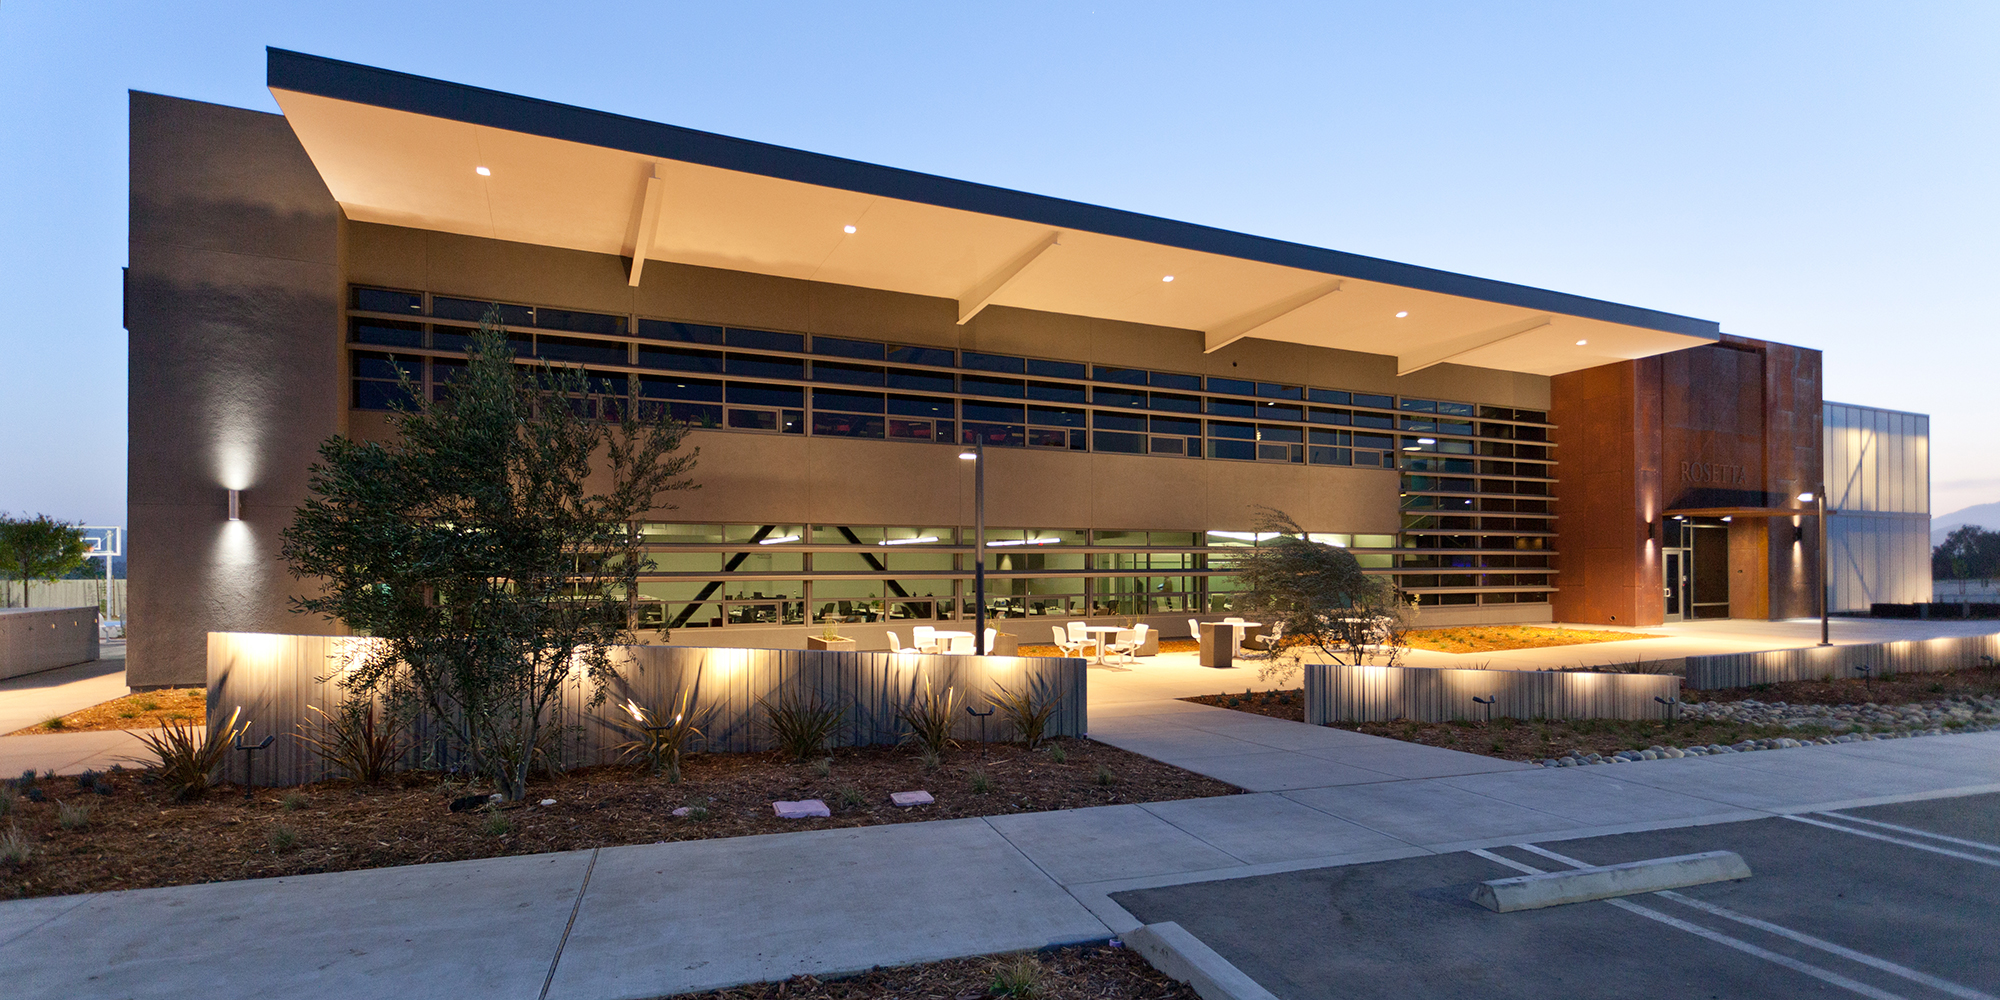 San Luis Obispo General Contractor - Large Office Building Contractor - JW Design and Construction